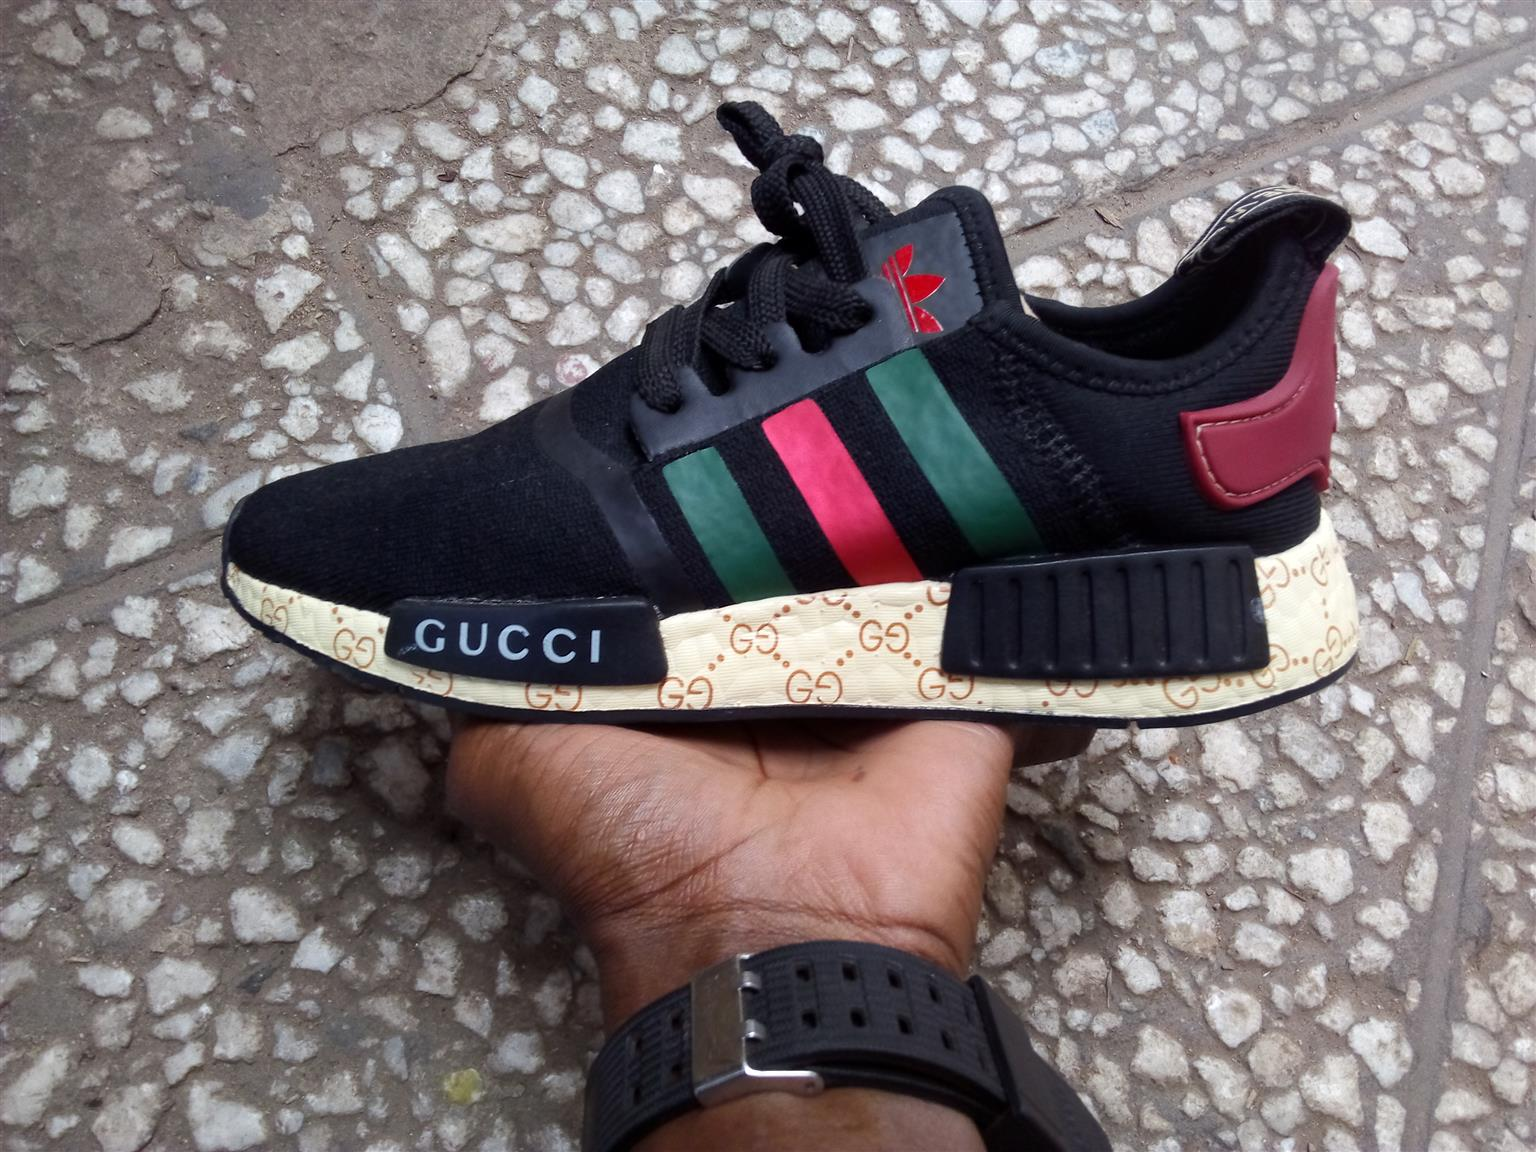 premium selection 6aac4 3e7c2 Adidas NMD Gucci Sneakers